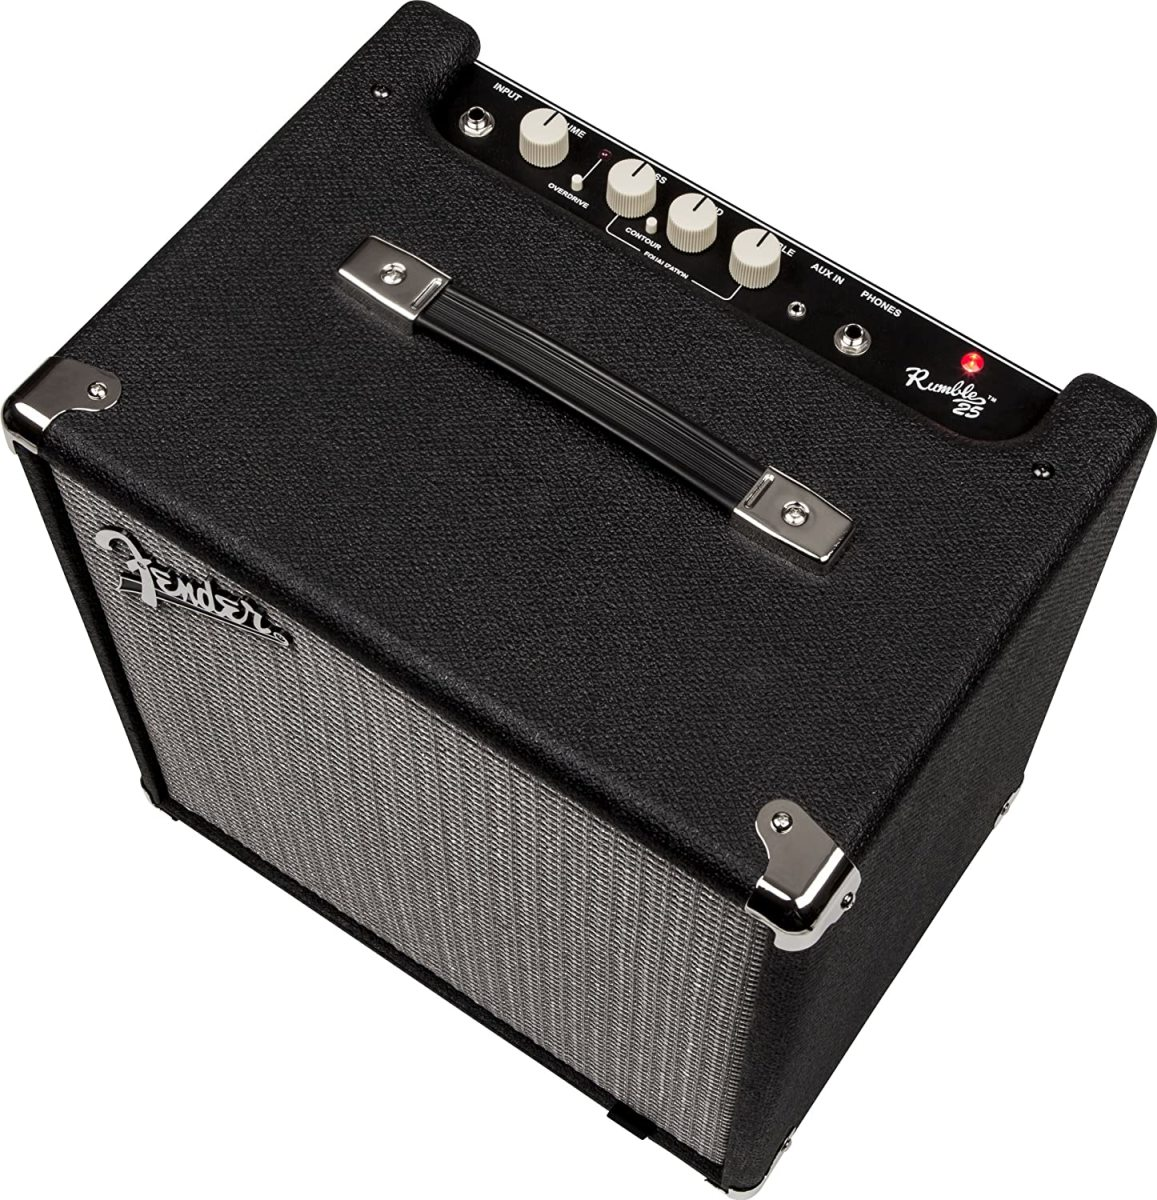 Fender Rumble 25 is one of the best bass amps for beginners.